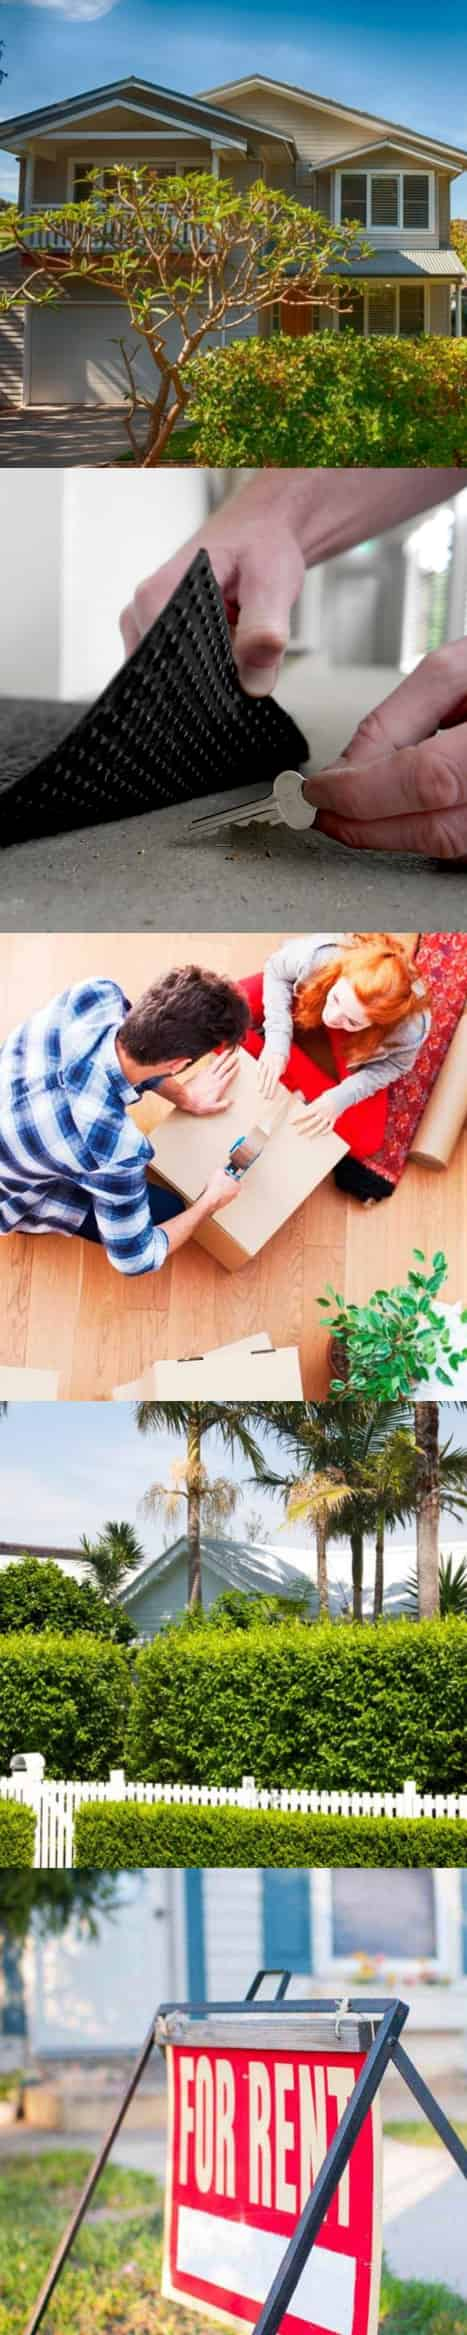 Home & Contents Insurance QLD